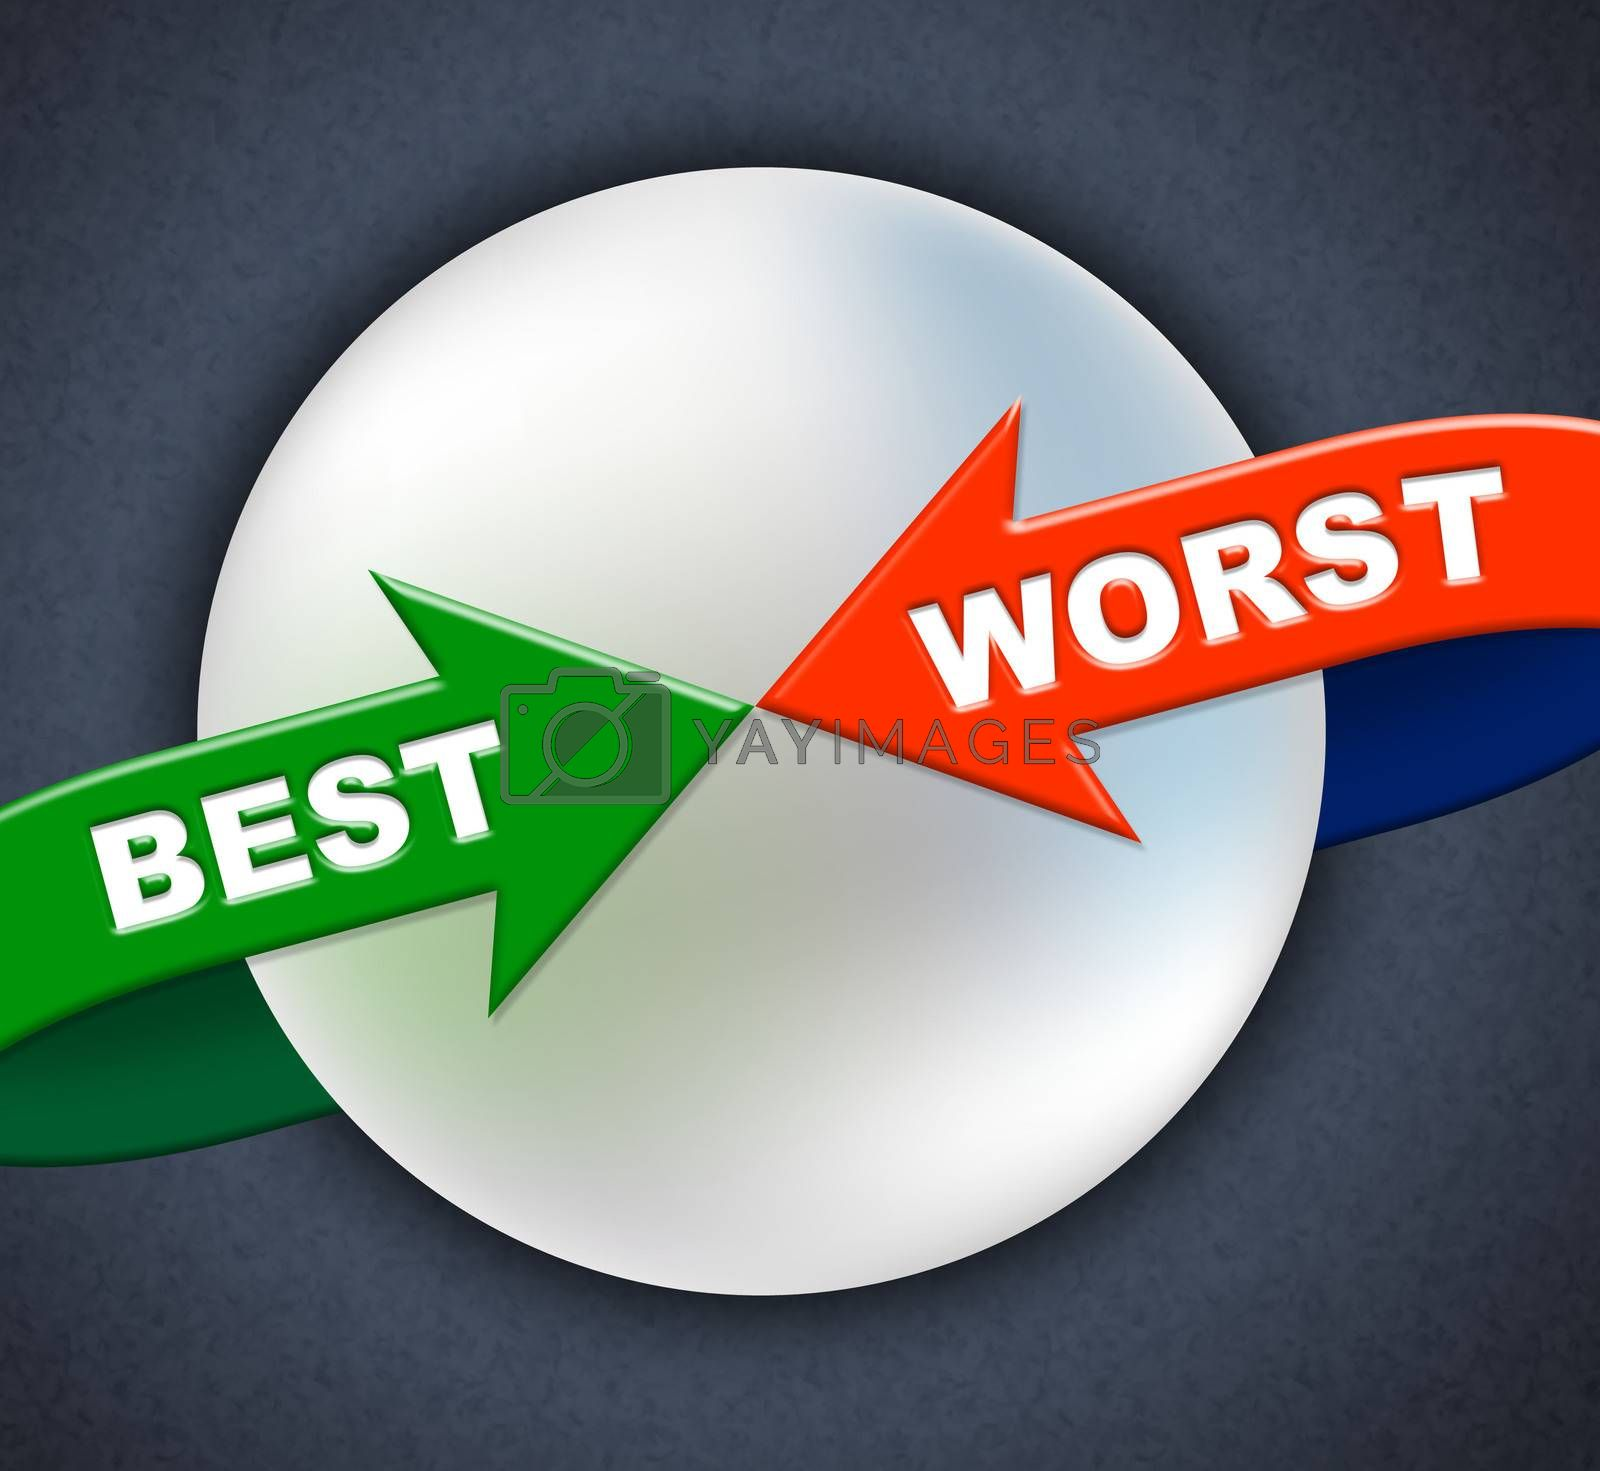 Best Worst Arrows Indicates Number One And Inferior by stuartmiles